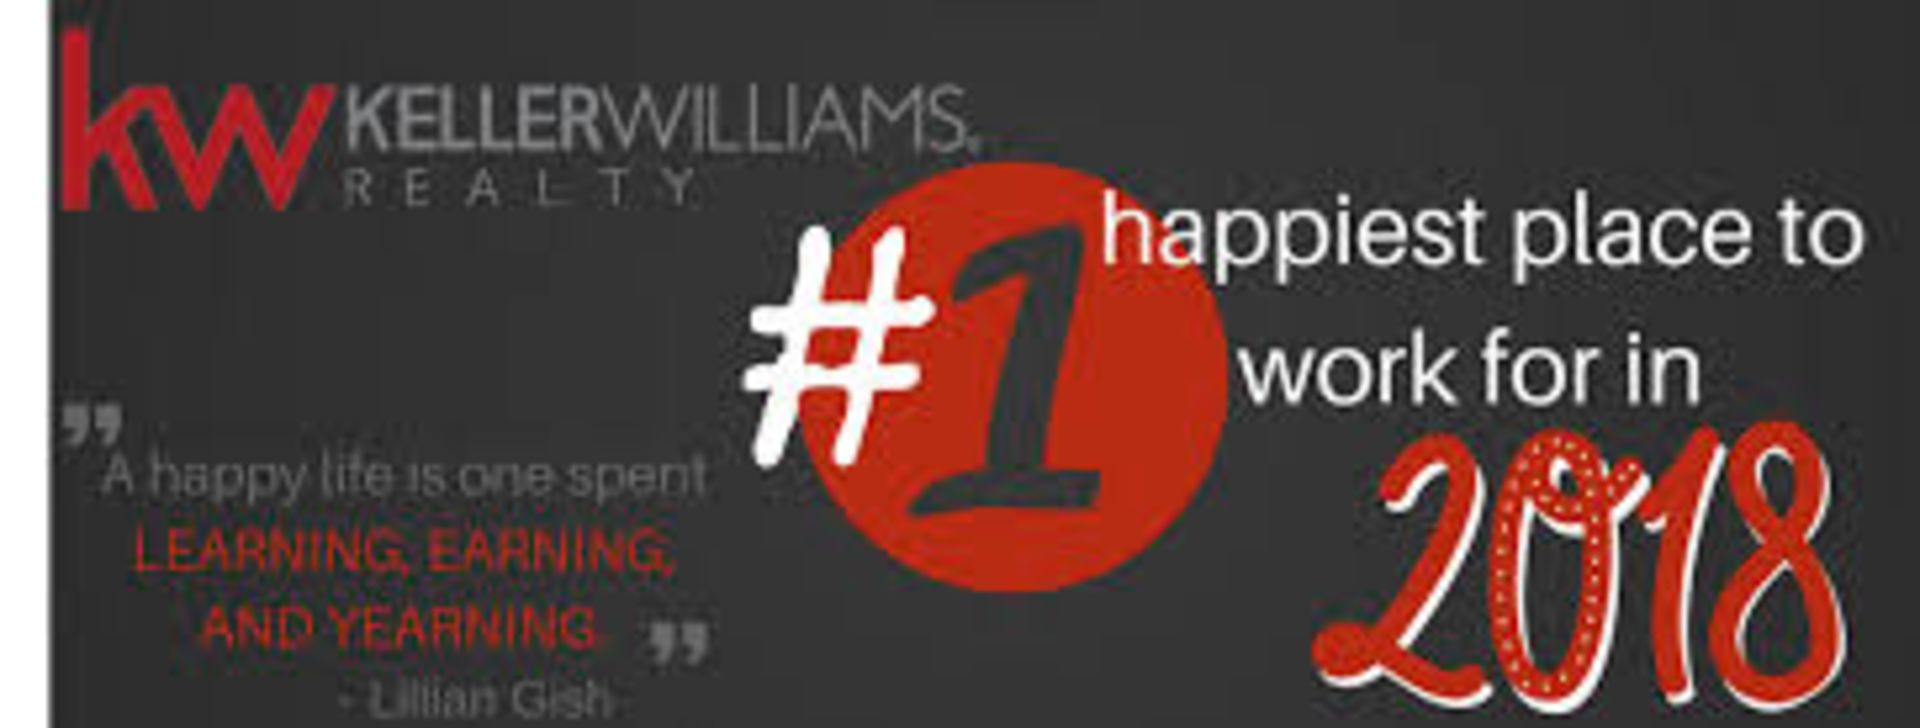 Forbes ranked Keller Williams the happiest company to work for in 2018